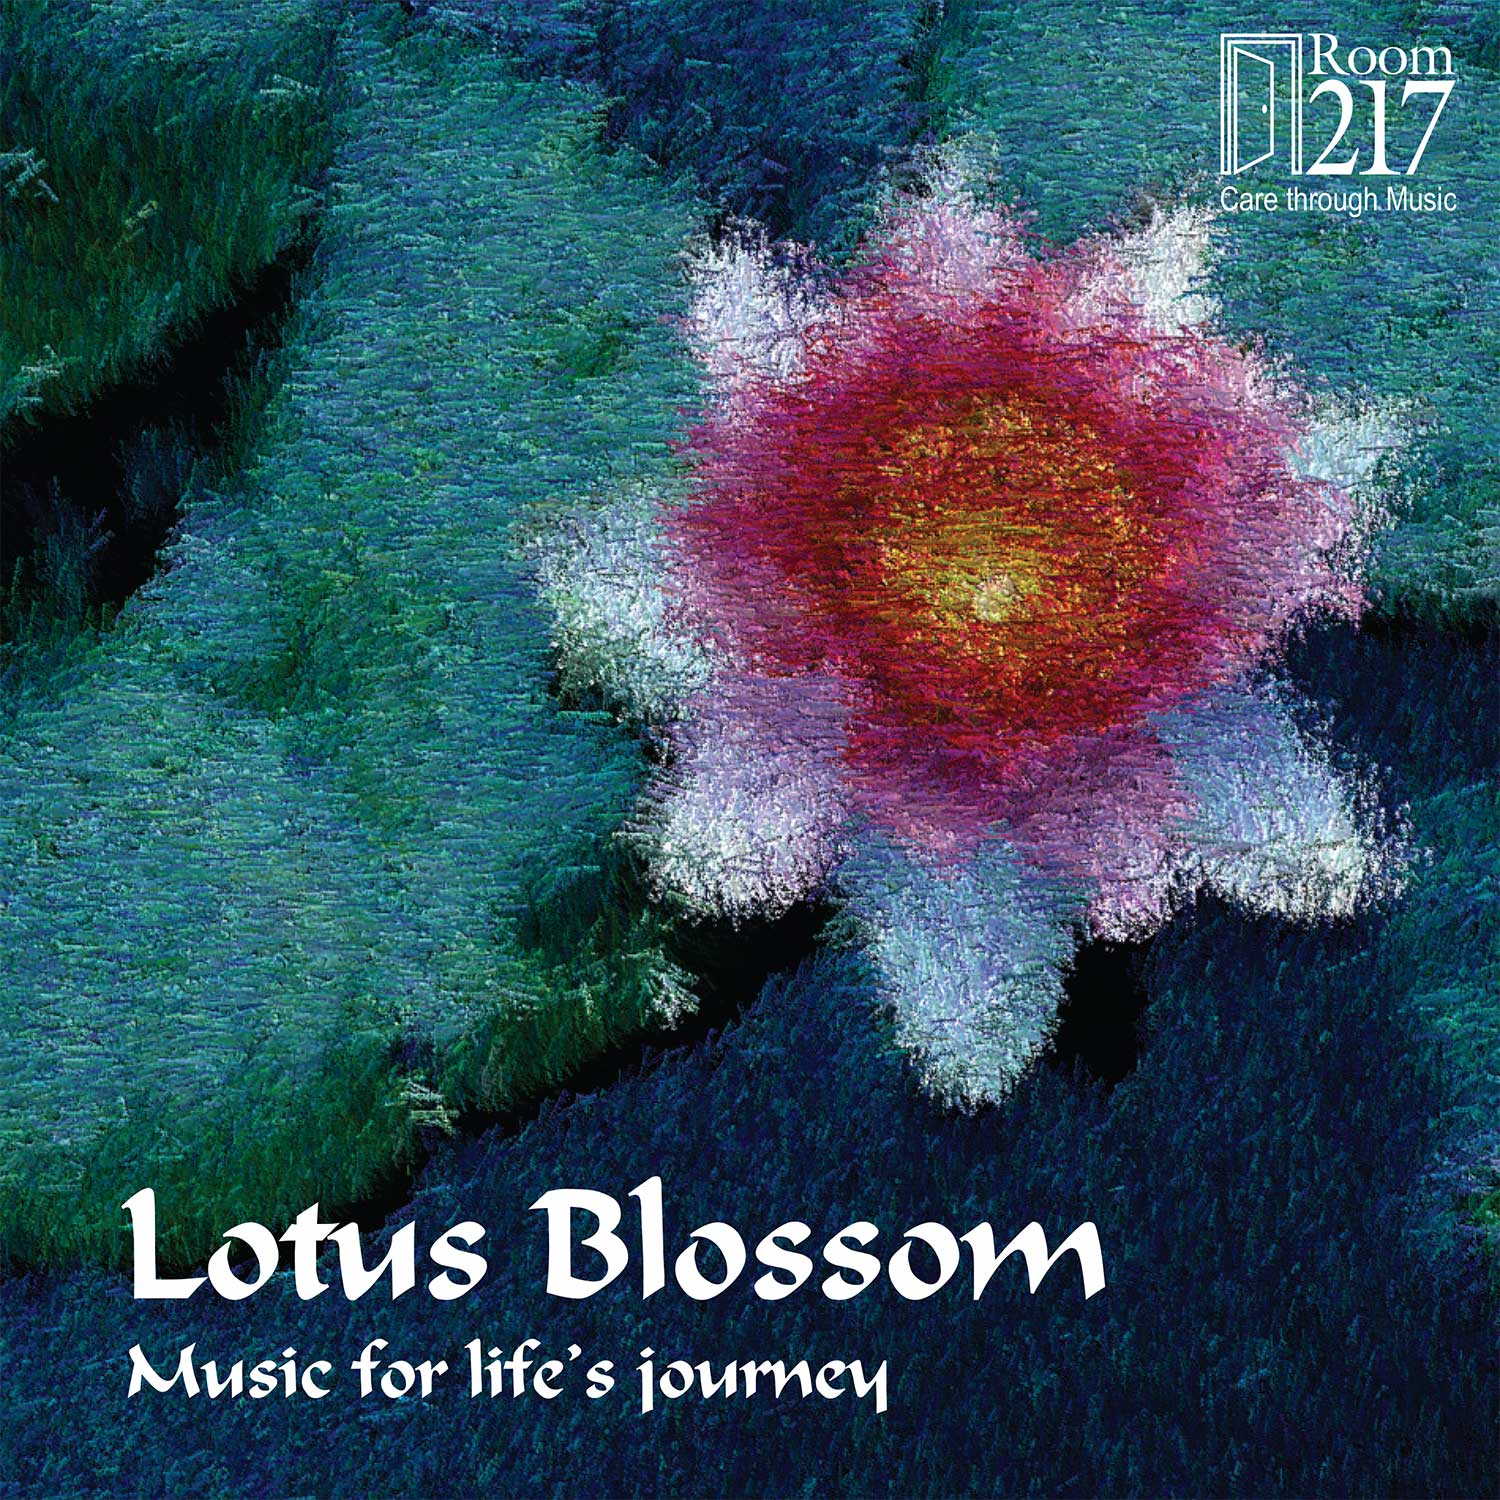 Room 217 – Lotus Blossom - Album art